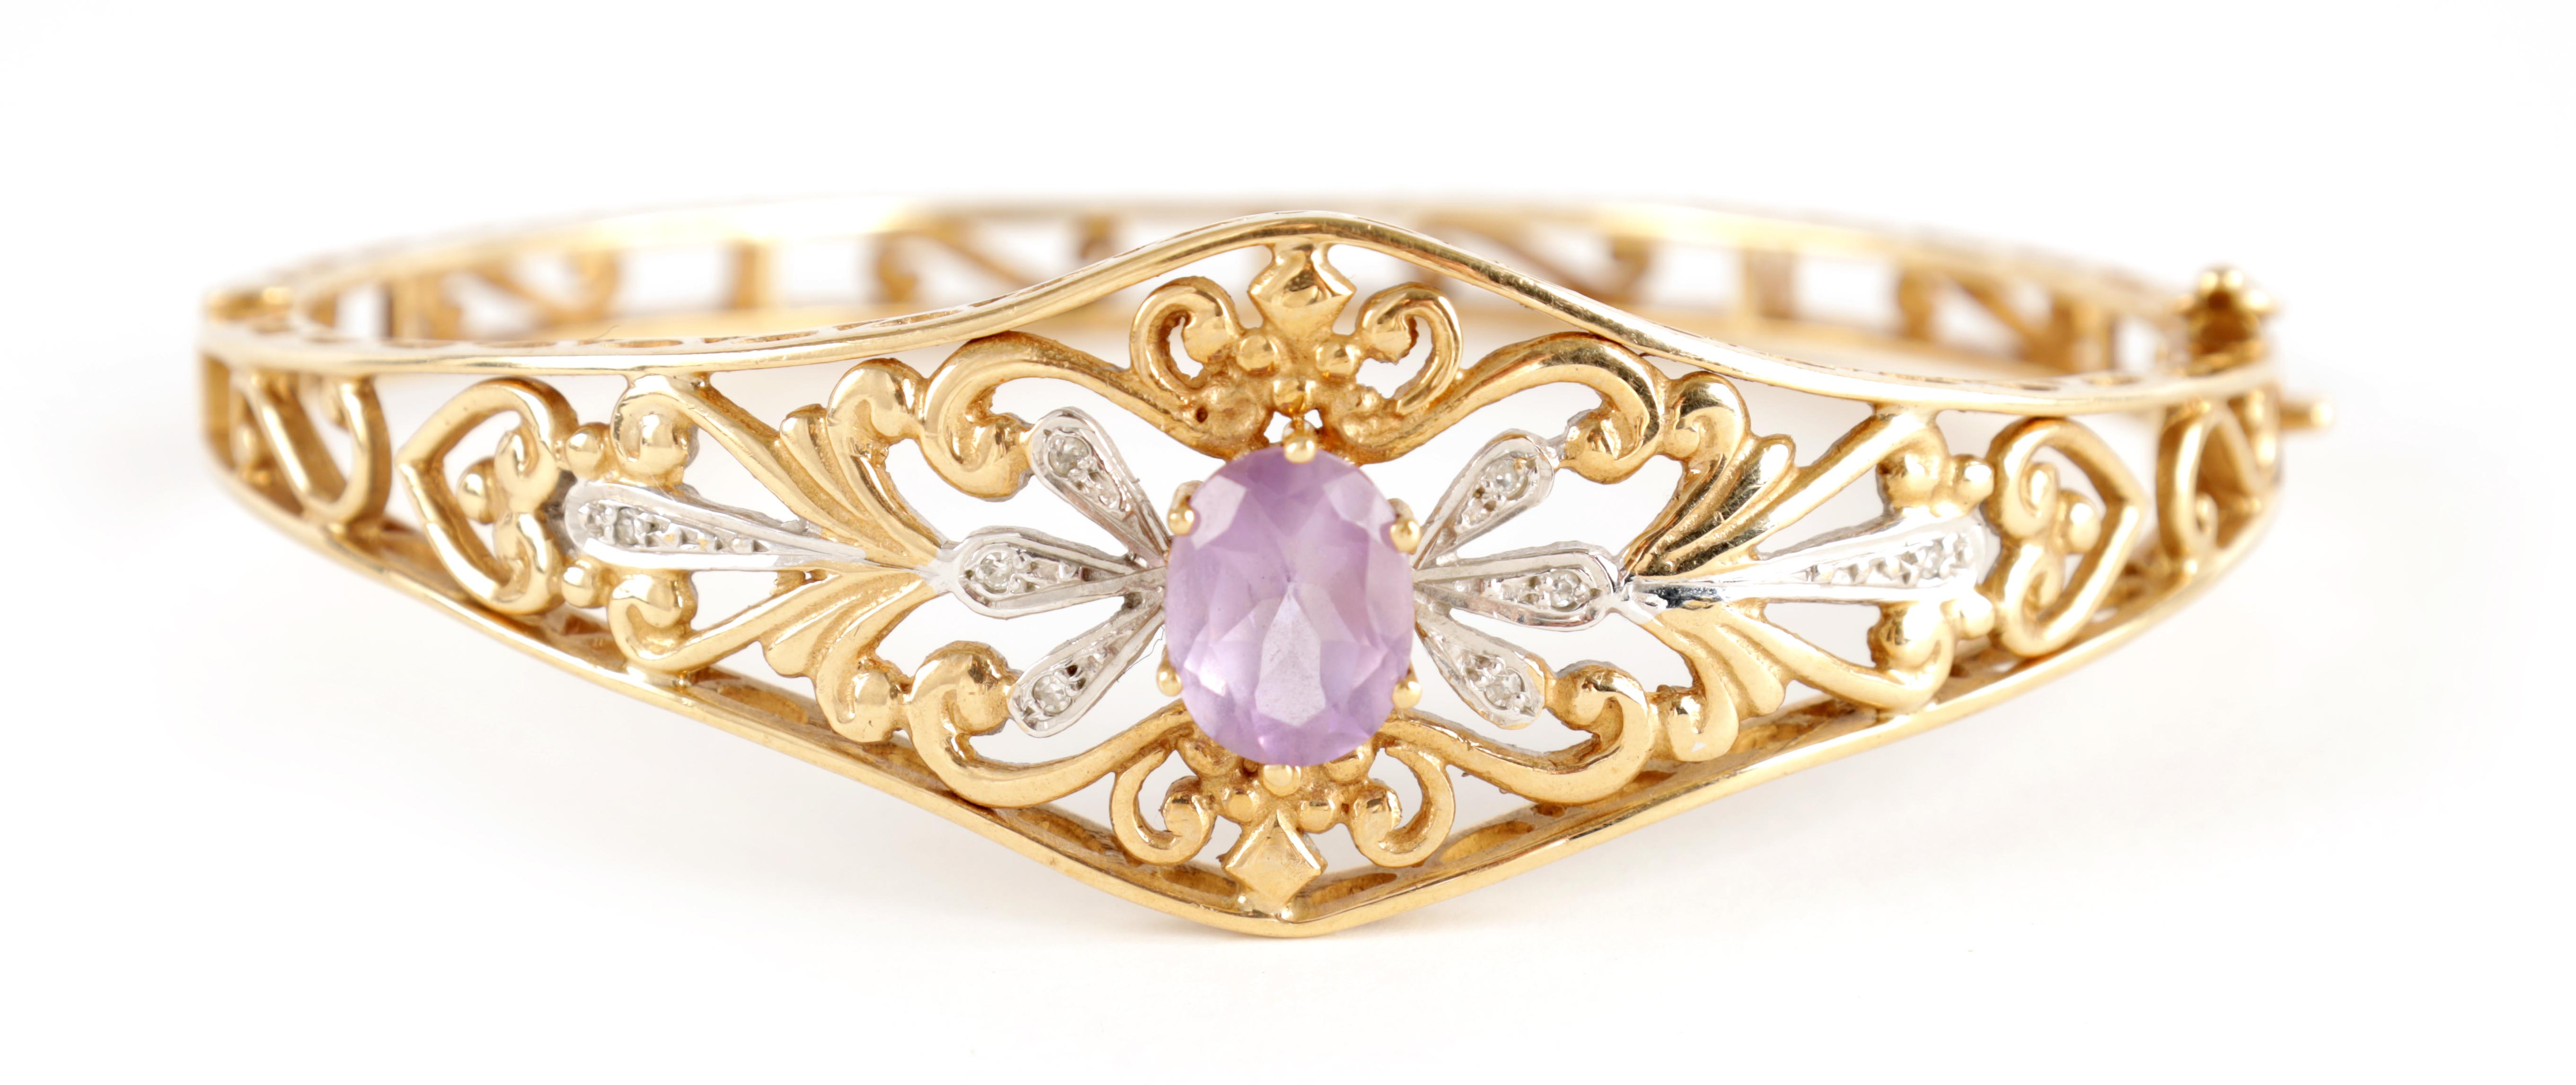 A LADIES 9CT GOLD DIAMOND AND AMETHYST BANGLE having filigree scrollwork decoration with diamonds